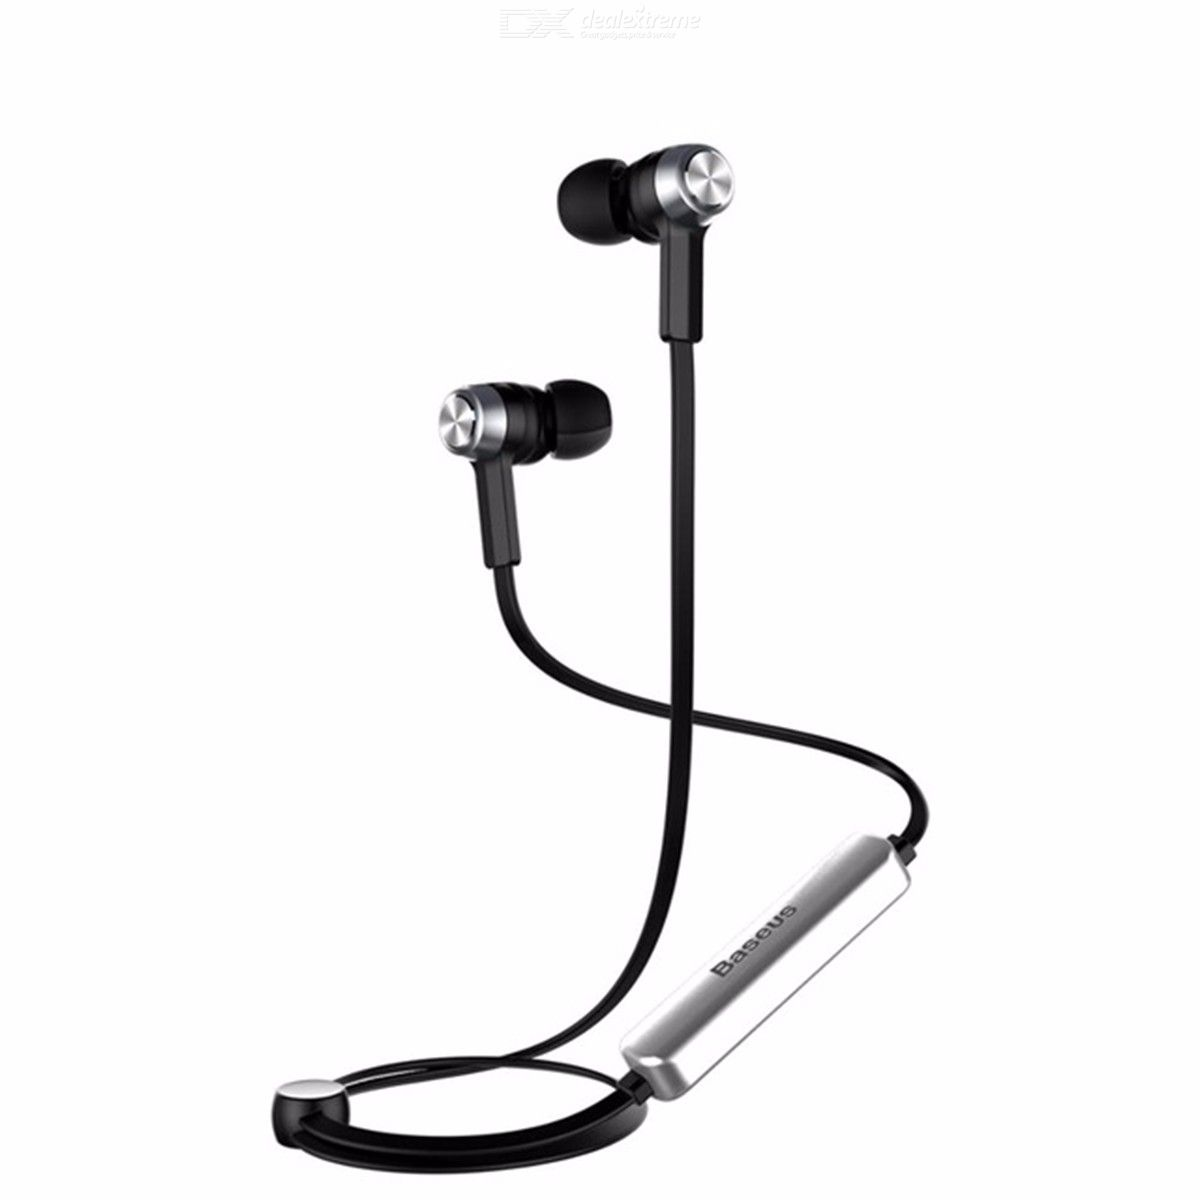 Magnet Wireless Bluetooth Earphones Sport V4.1 Headset With Mic Stereo Earbuds For IPHONE Xiaomi